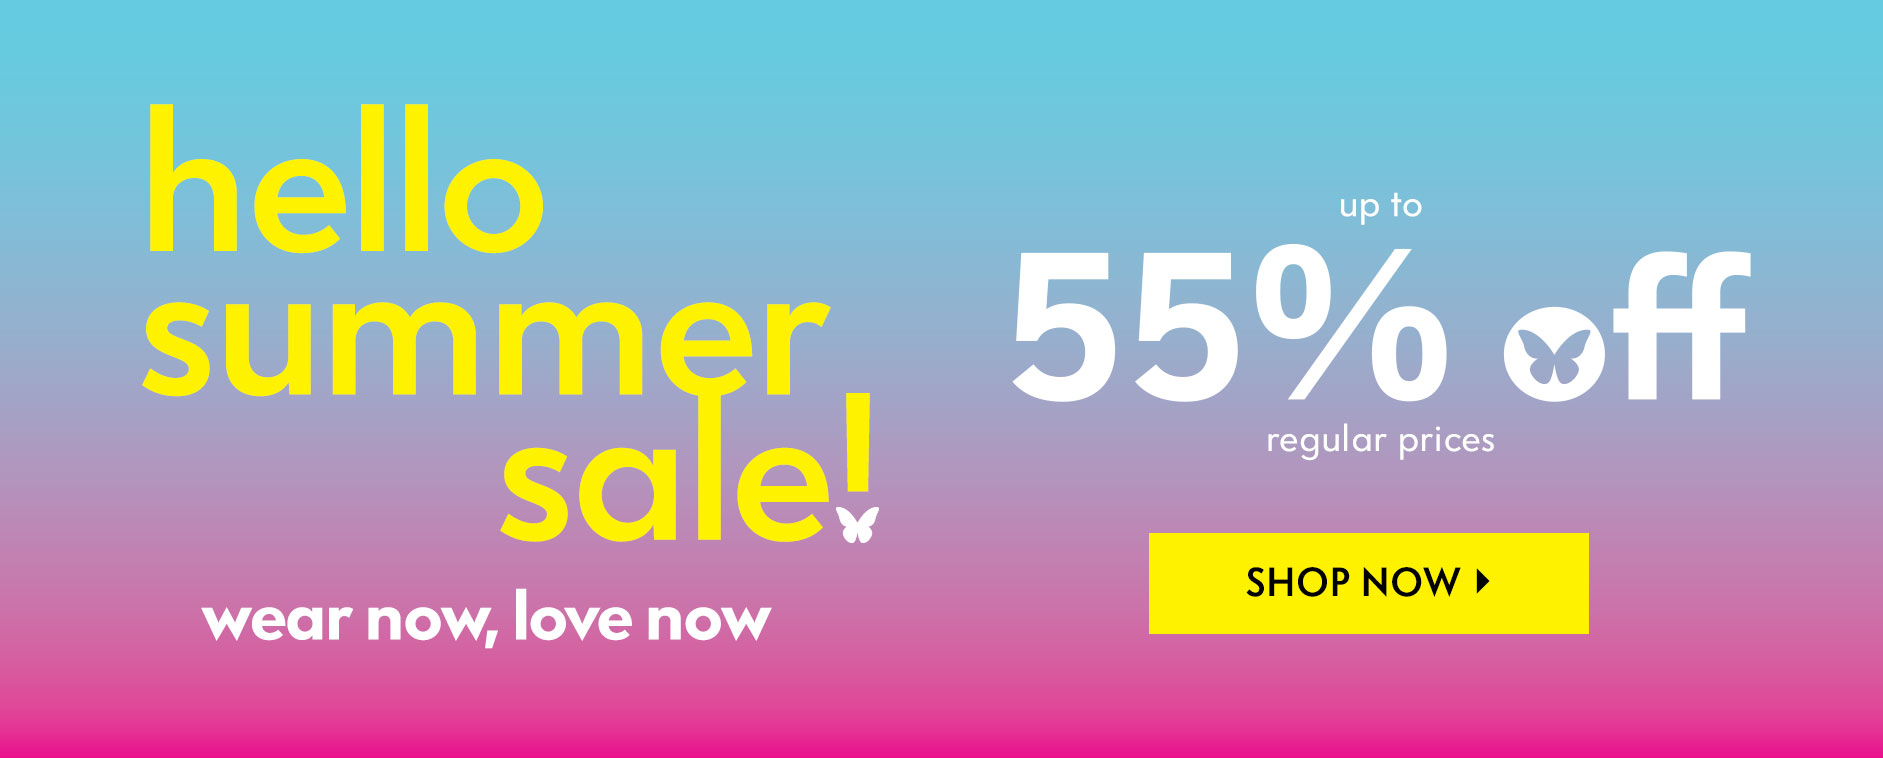 Hello summer sale! Wear now, love now - Up to 55% off regular prices